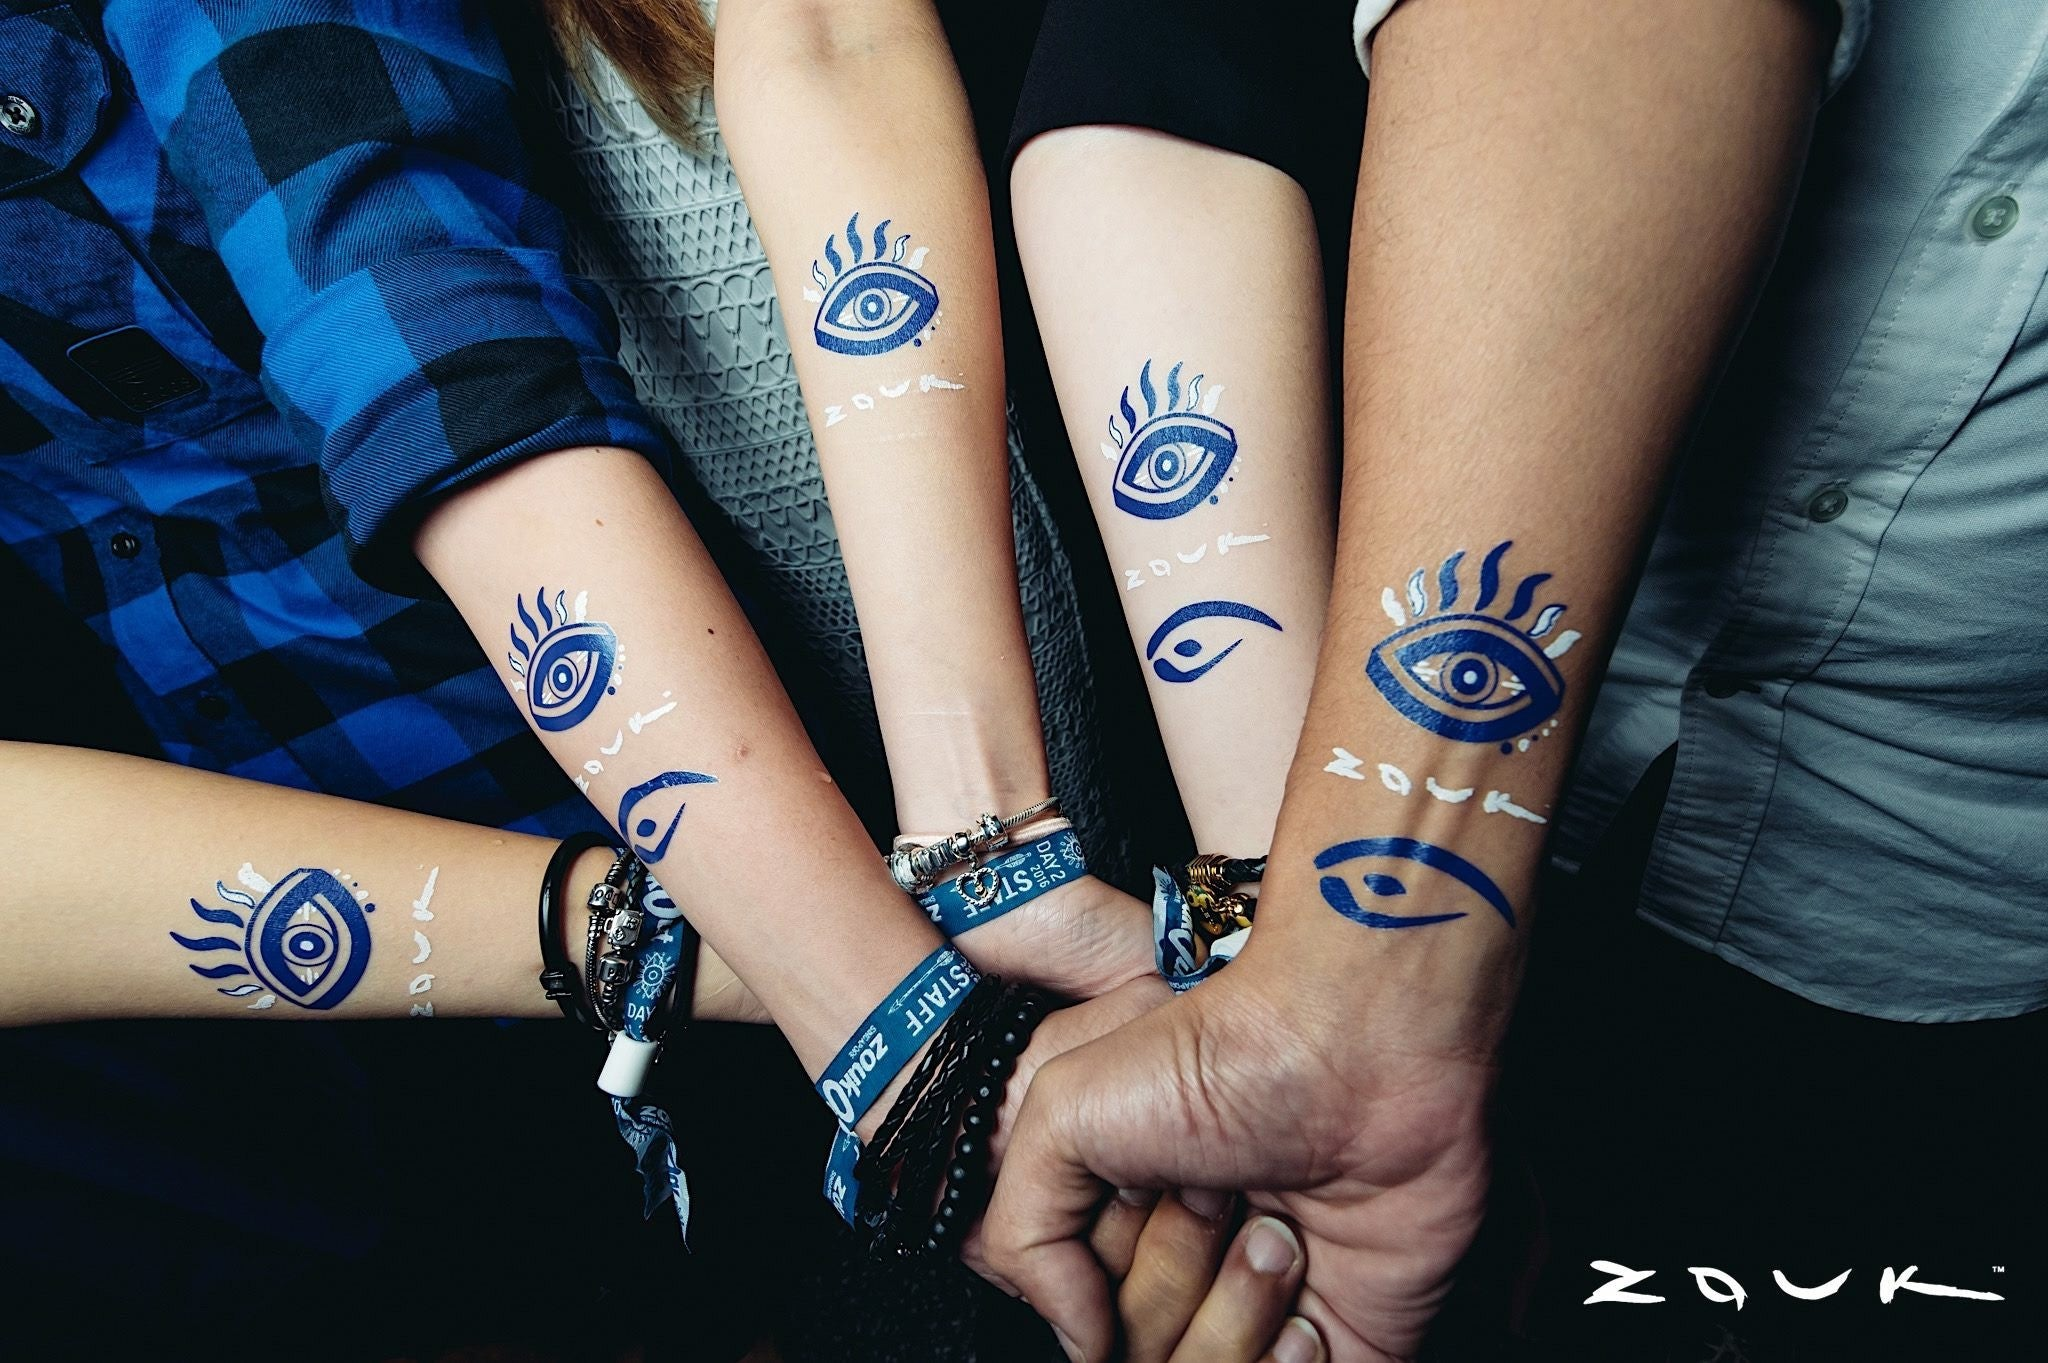 Zouk opening Customise Tattoos x Marchbaby Collective